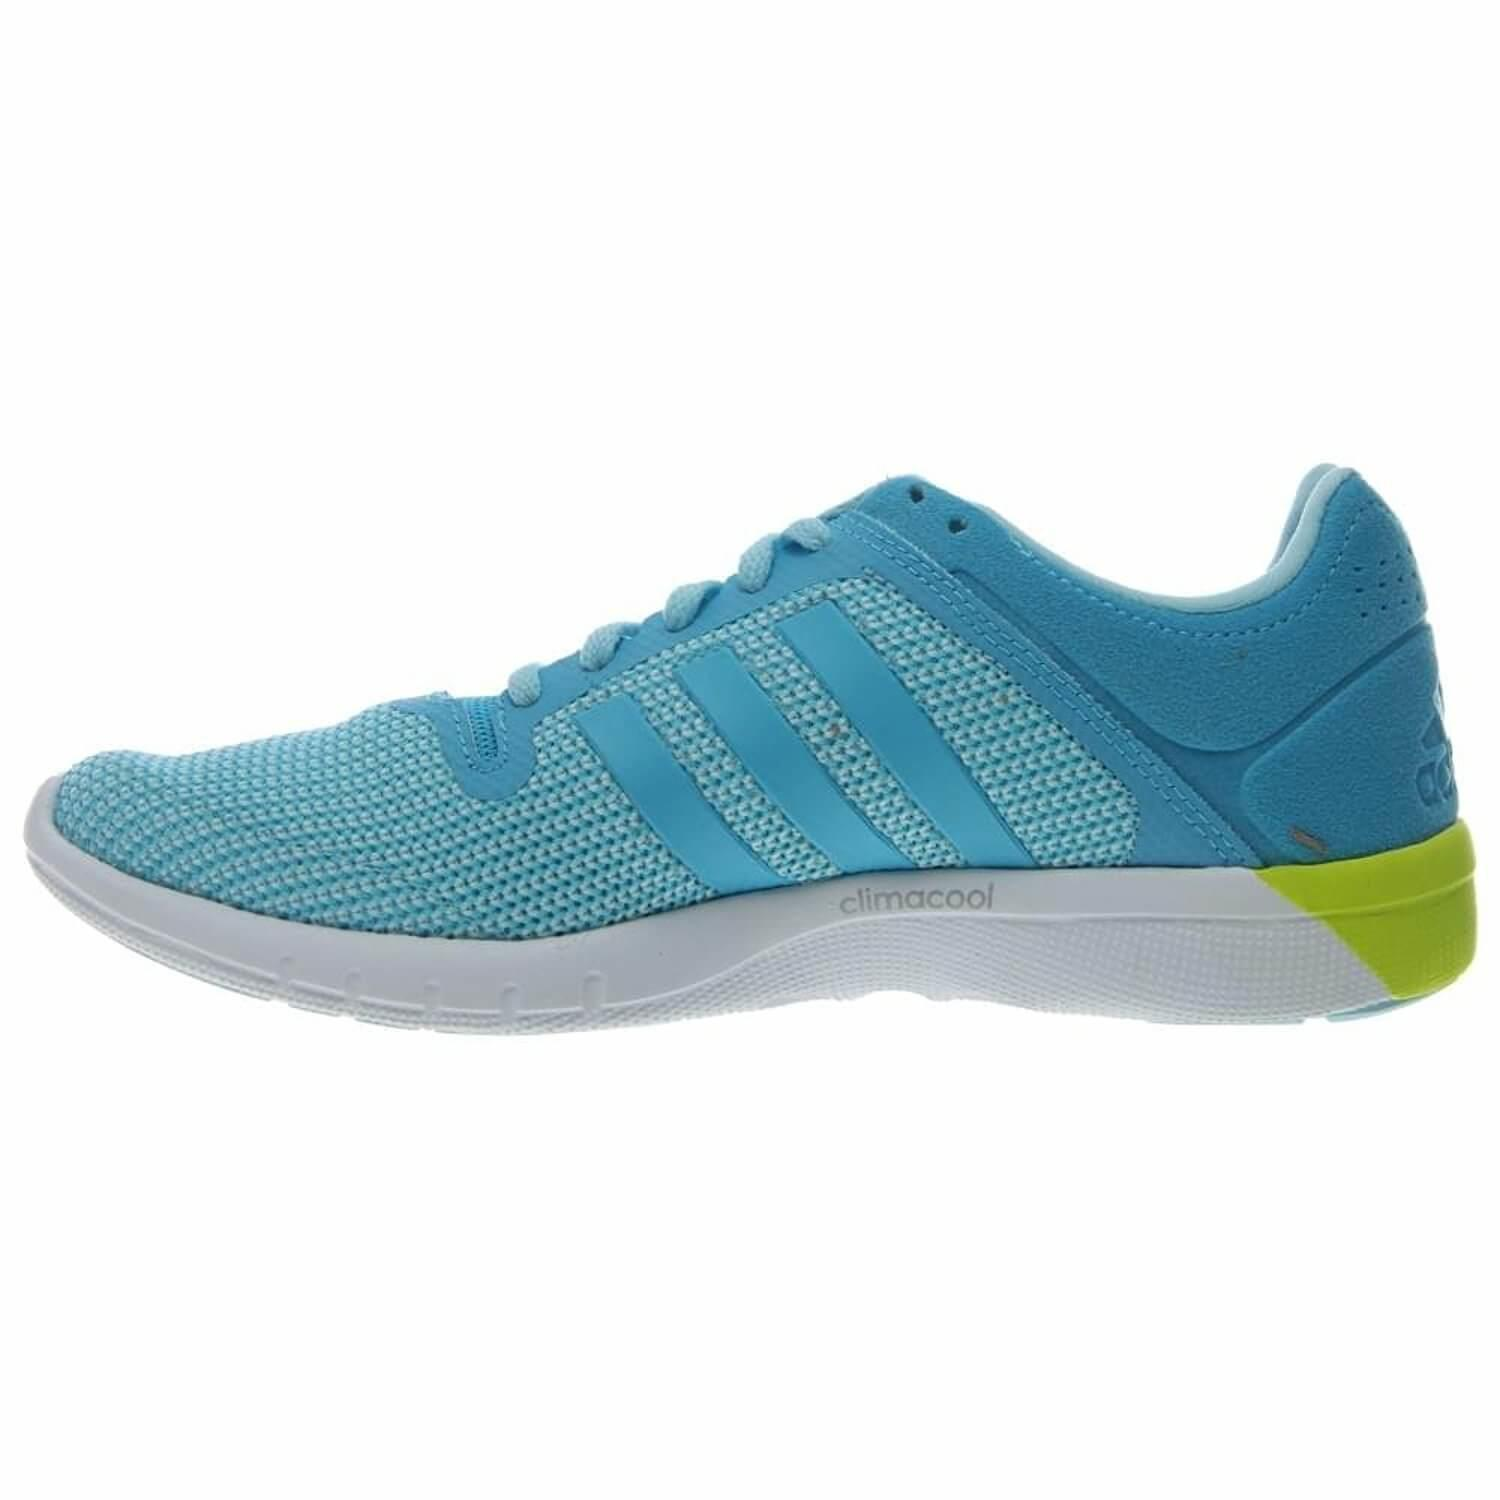 Adidas Climacool Fresh Shoes Review